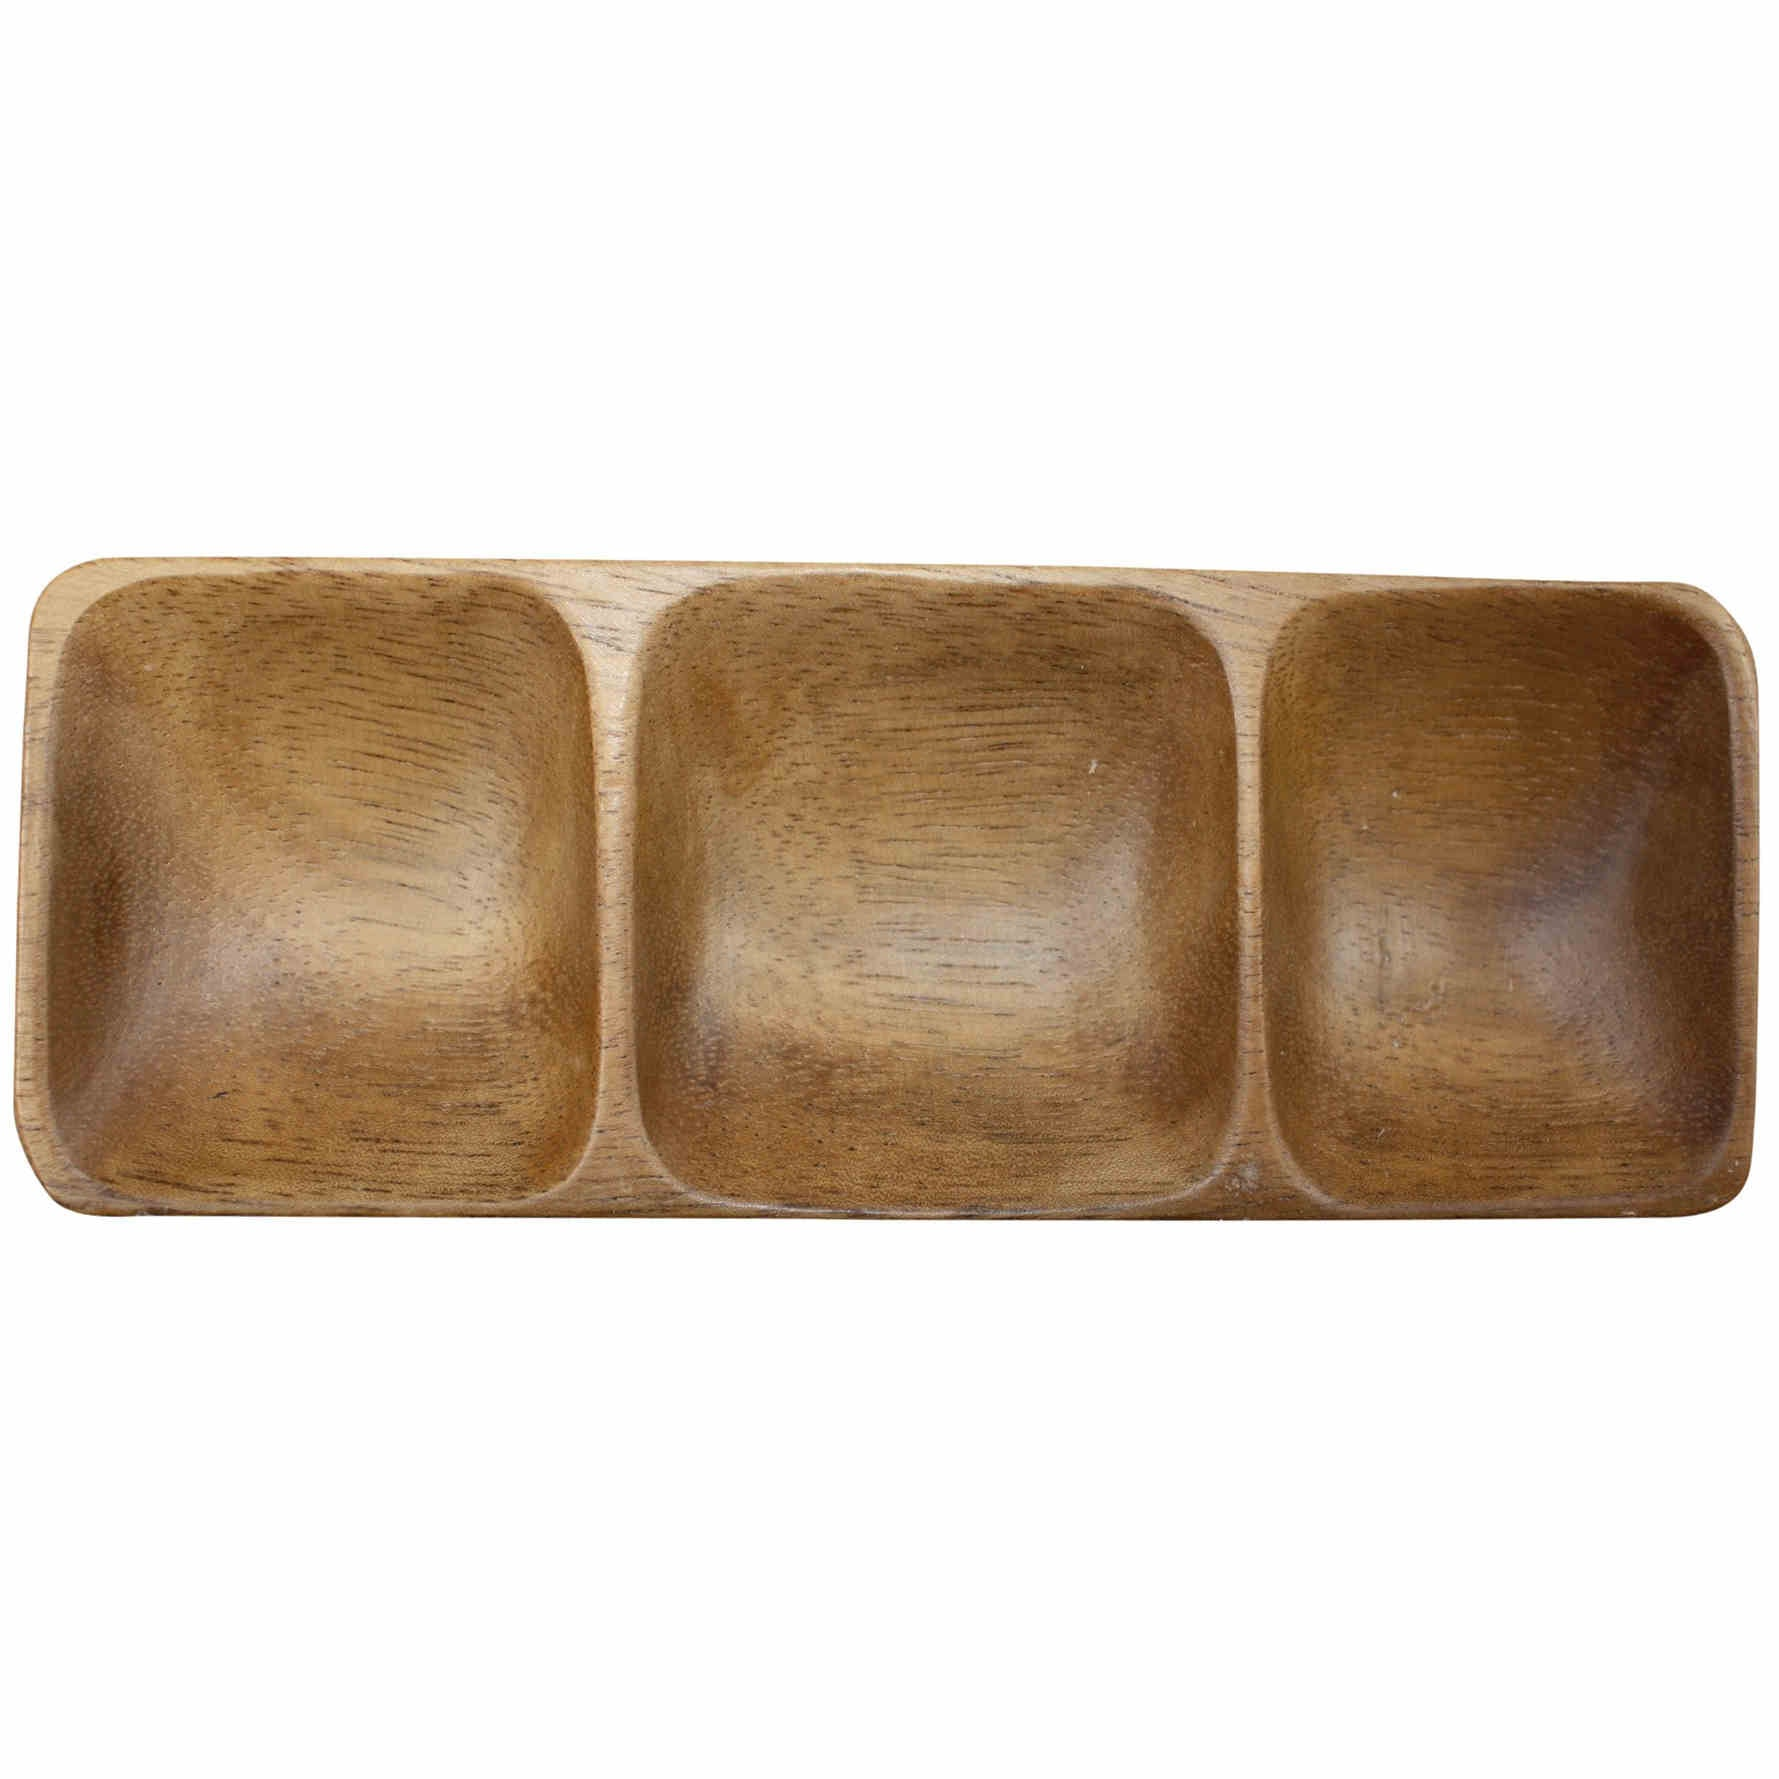 Acacia dish with 3 compartments